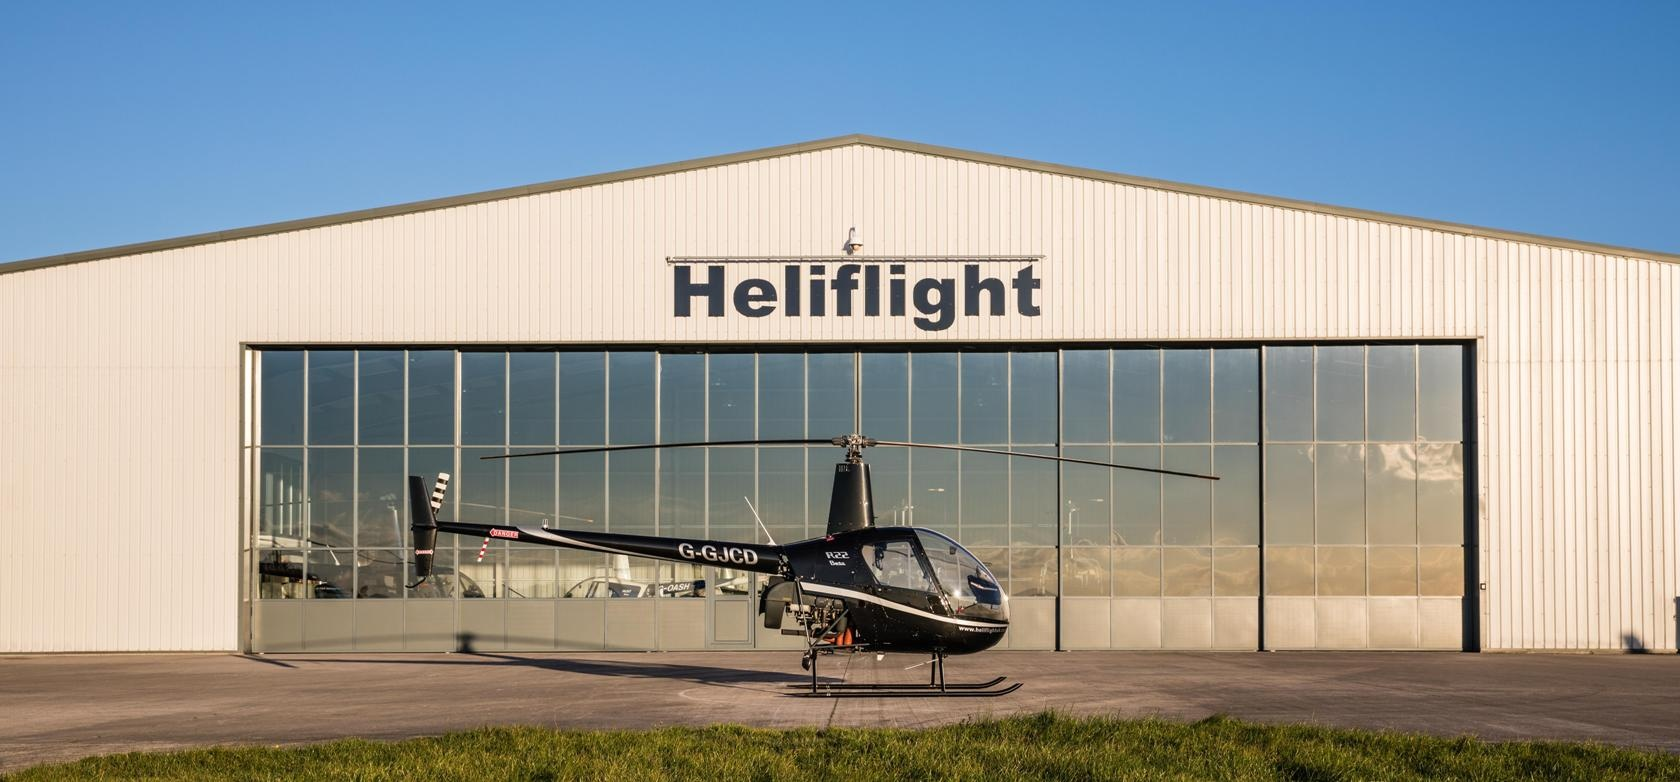 R22 Helicopter Trial Flight Lesson in Gloucestershire (30 Mins)-2